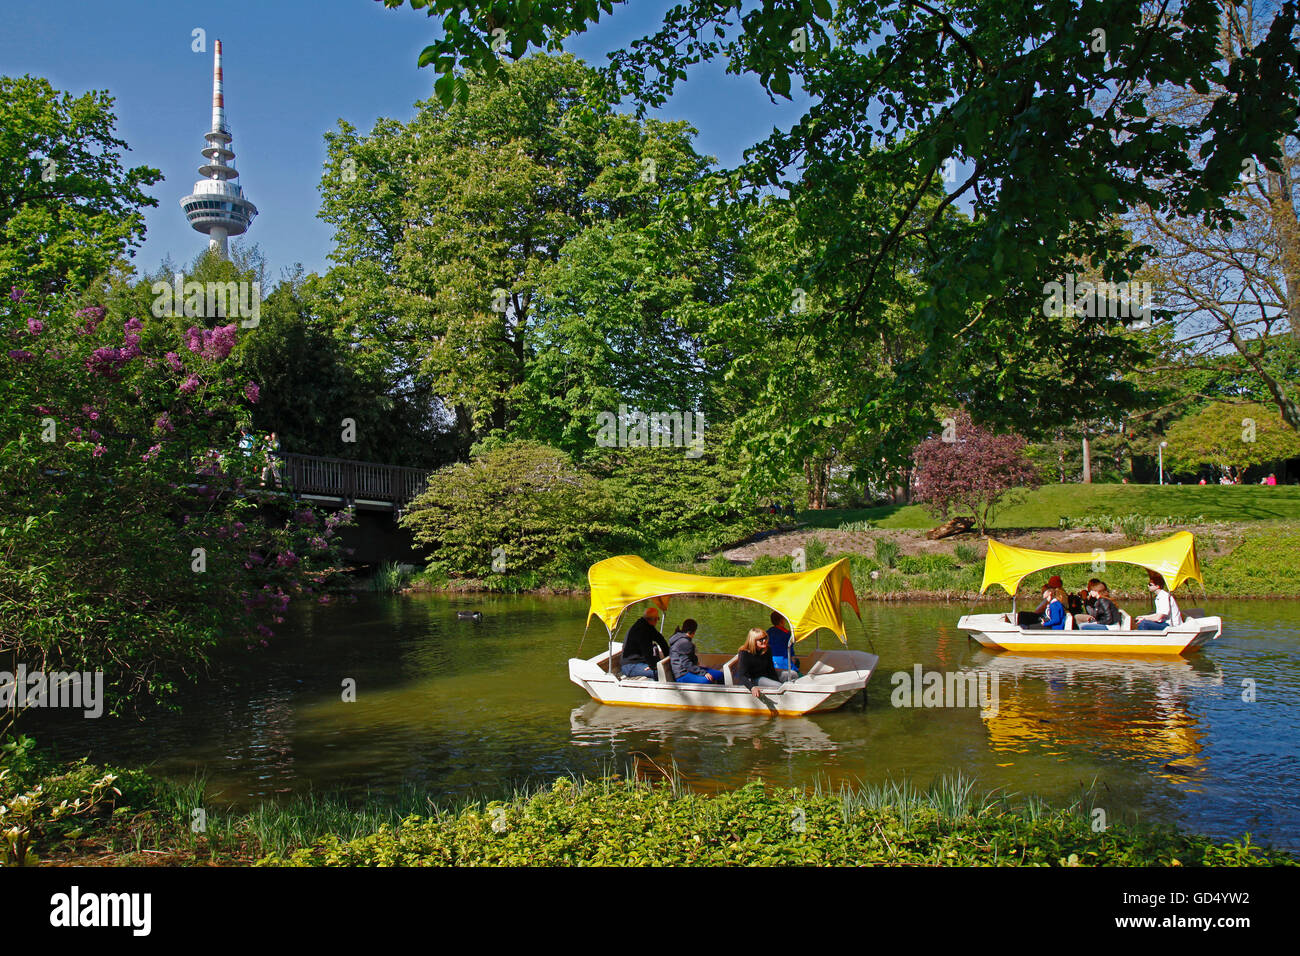 Gondoletta Boats Kutzer Pond TV Tower Luisenpark